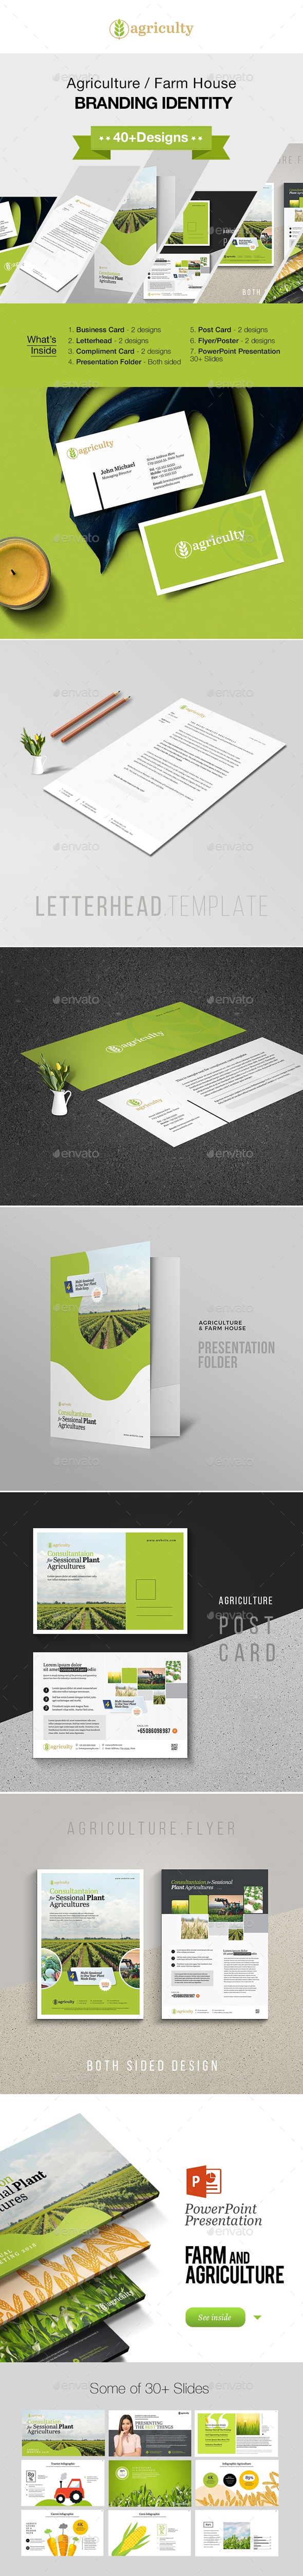 Agriculture Farm House Branding Identity - Stationery Print Templates